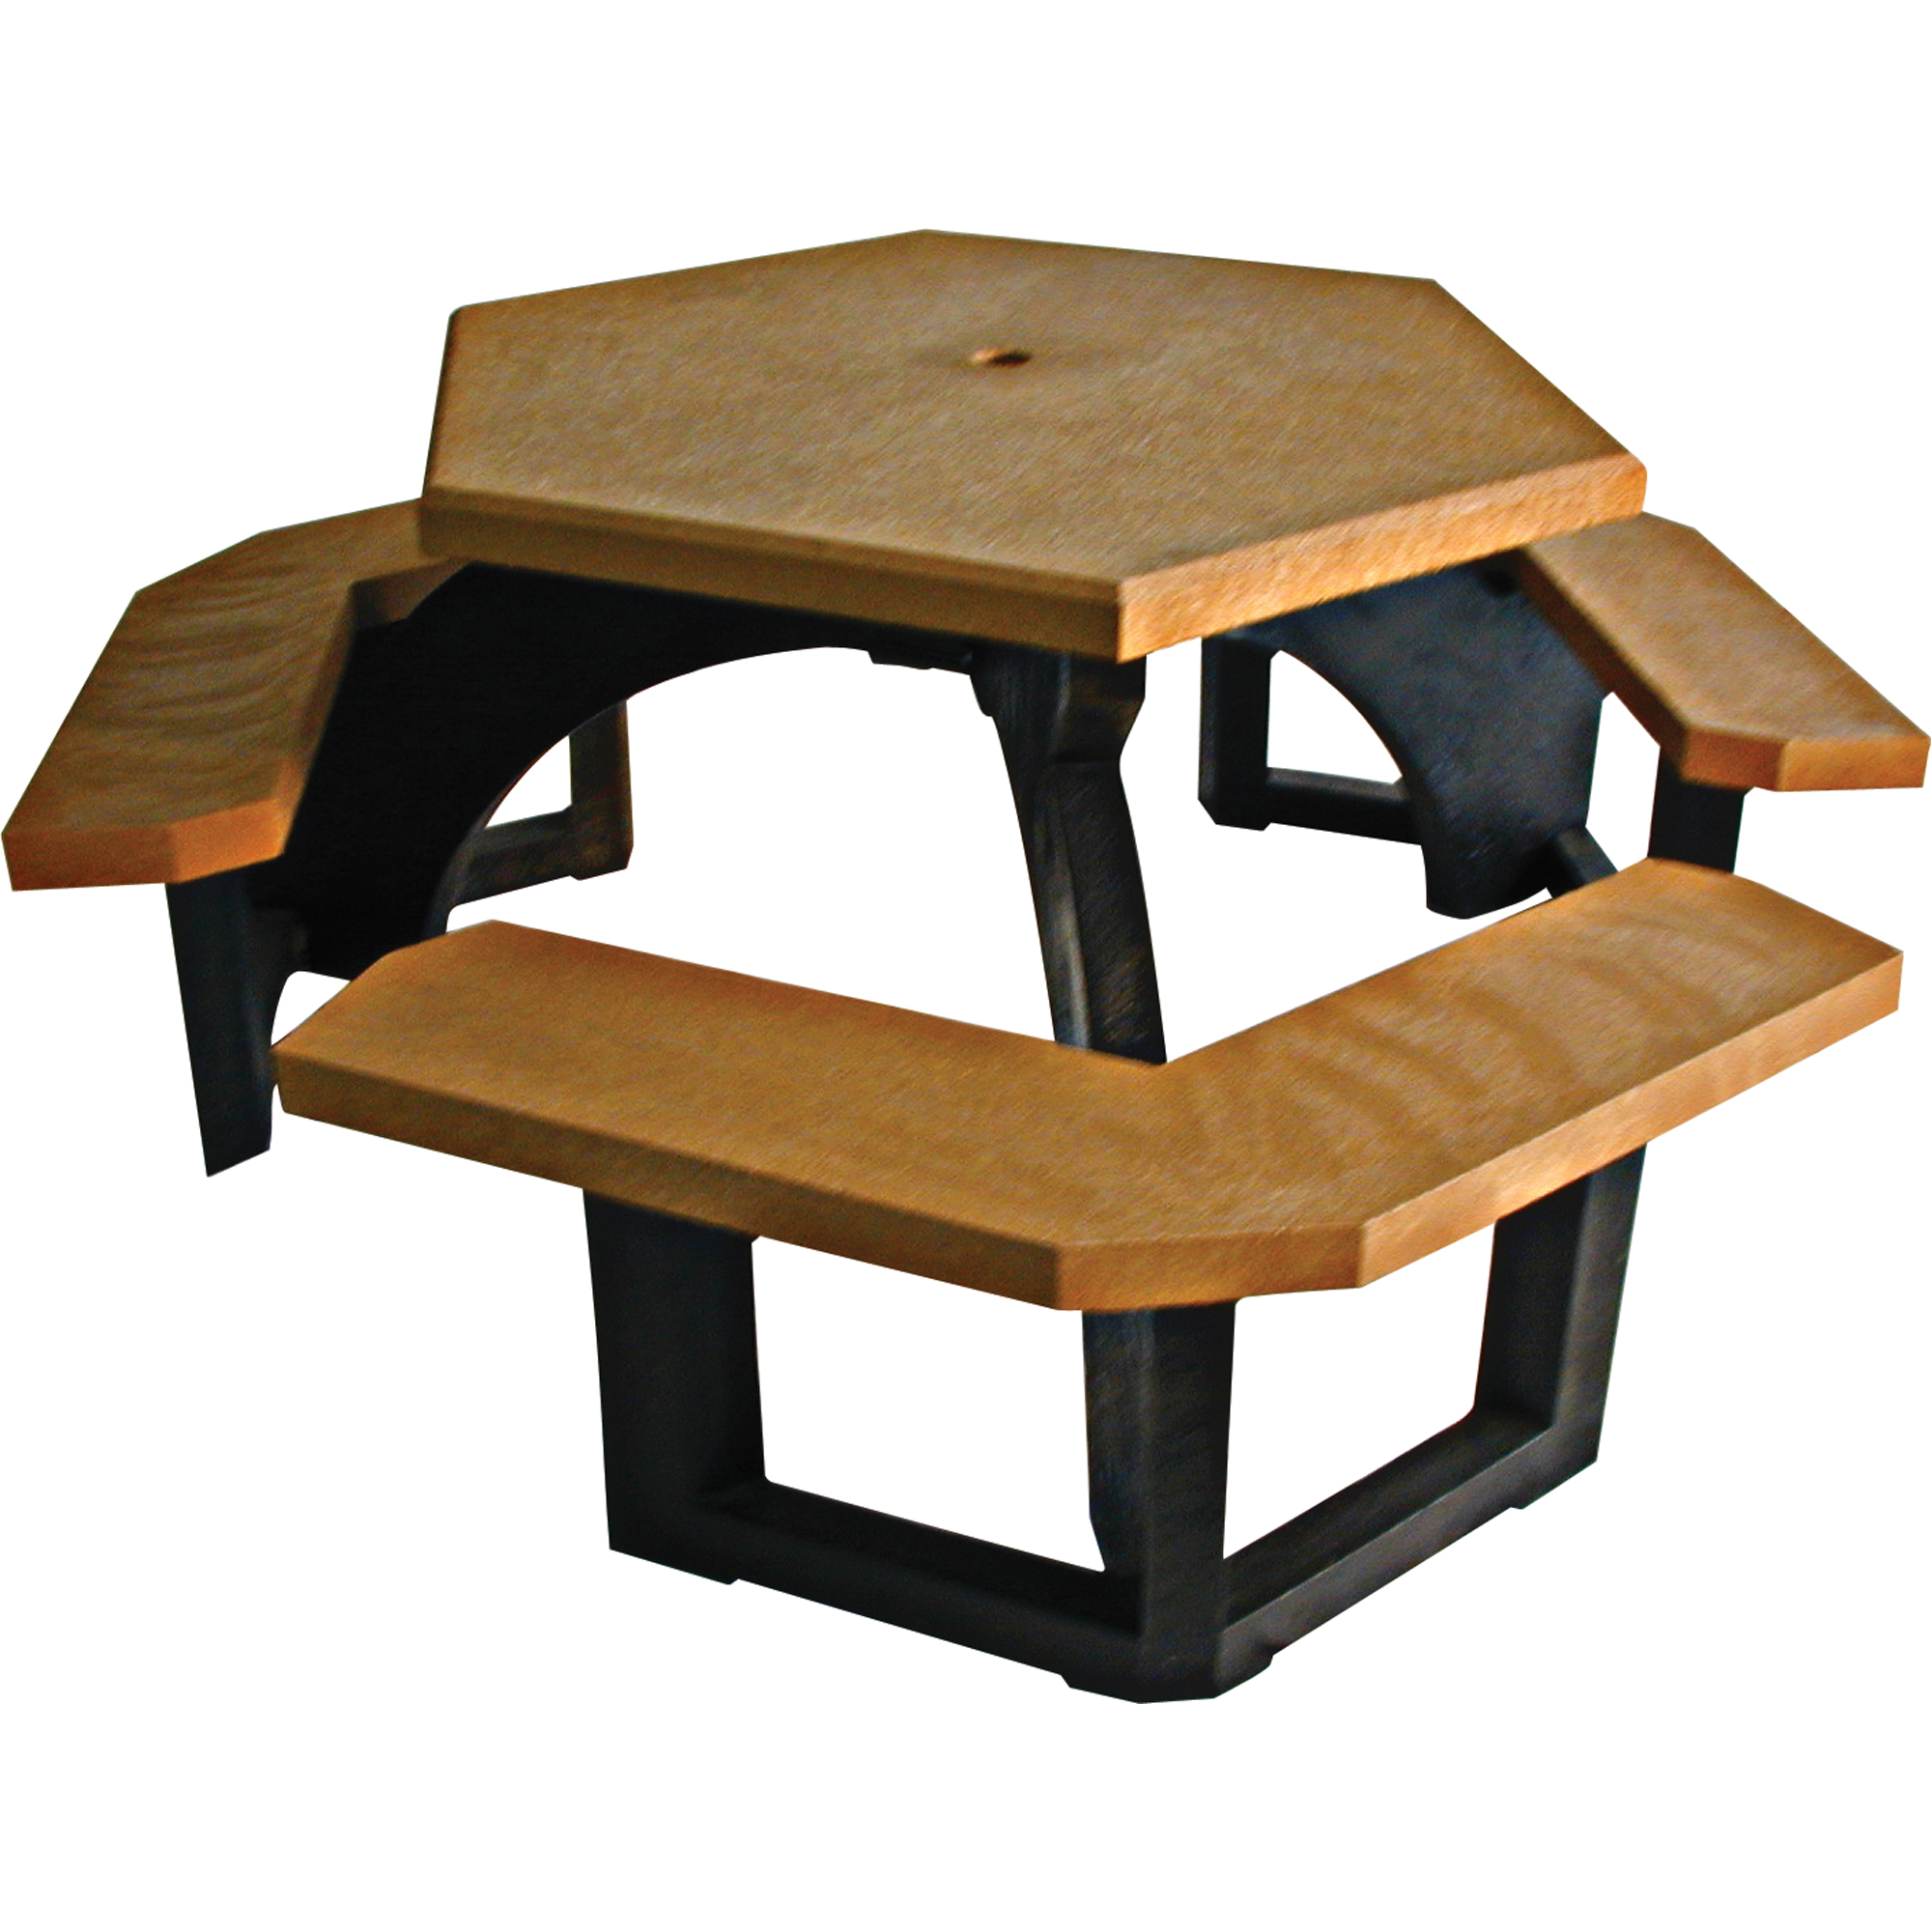 Plastic Recycling Recycled Hexagon Picnic Tables Nj130 10ce Table Tenaquip